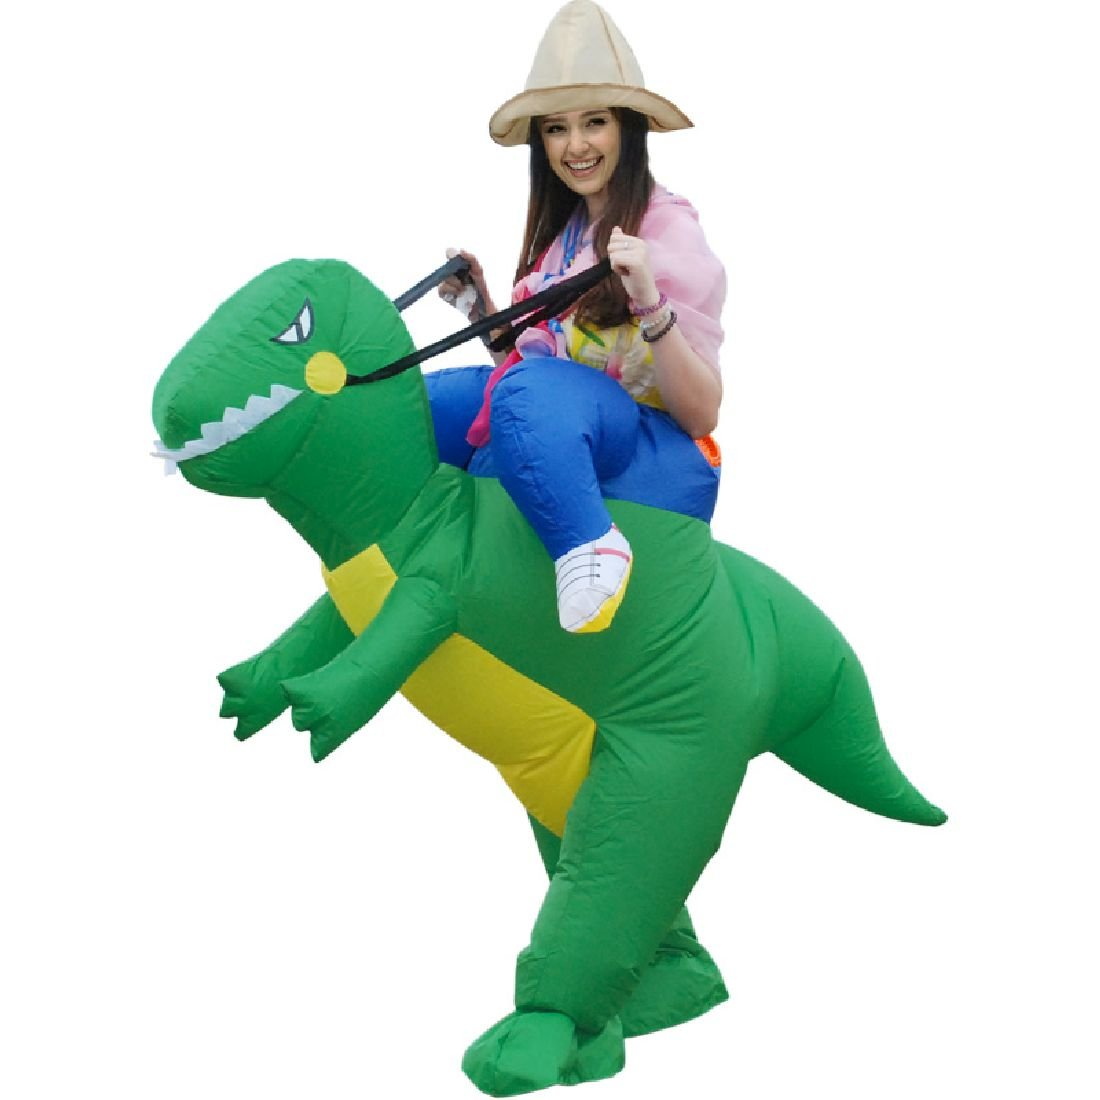 Inflatable Dinosaur Costume 3 Size Halloween Cosplay Animal Green Dino Rider